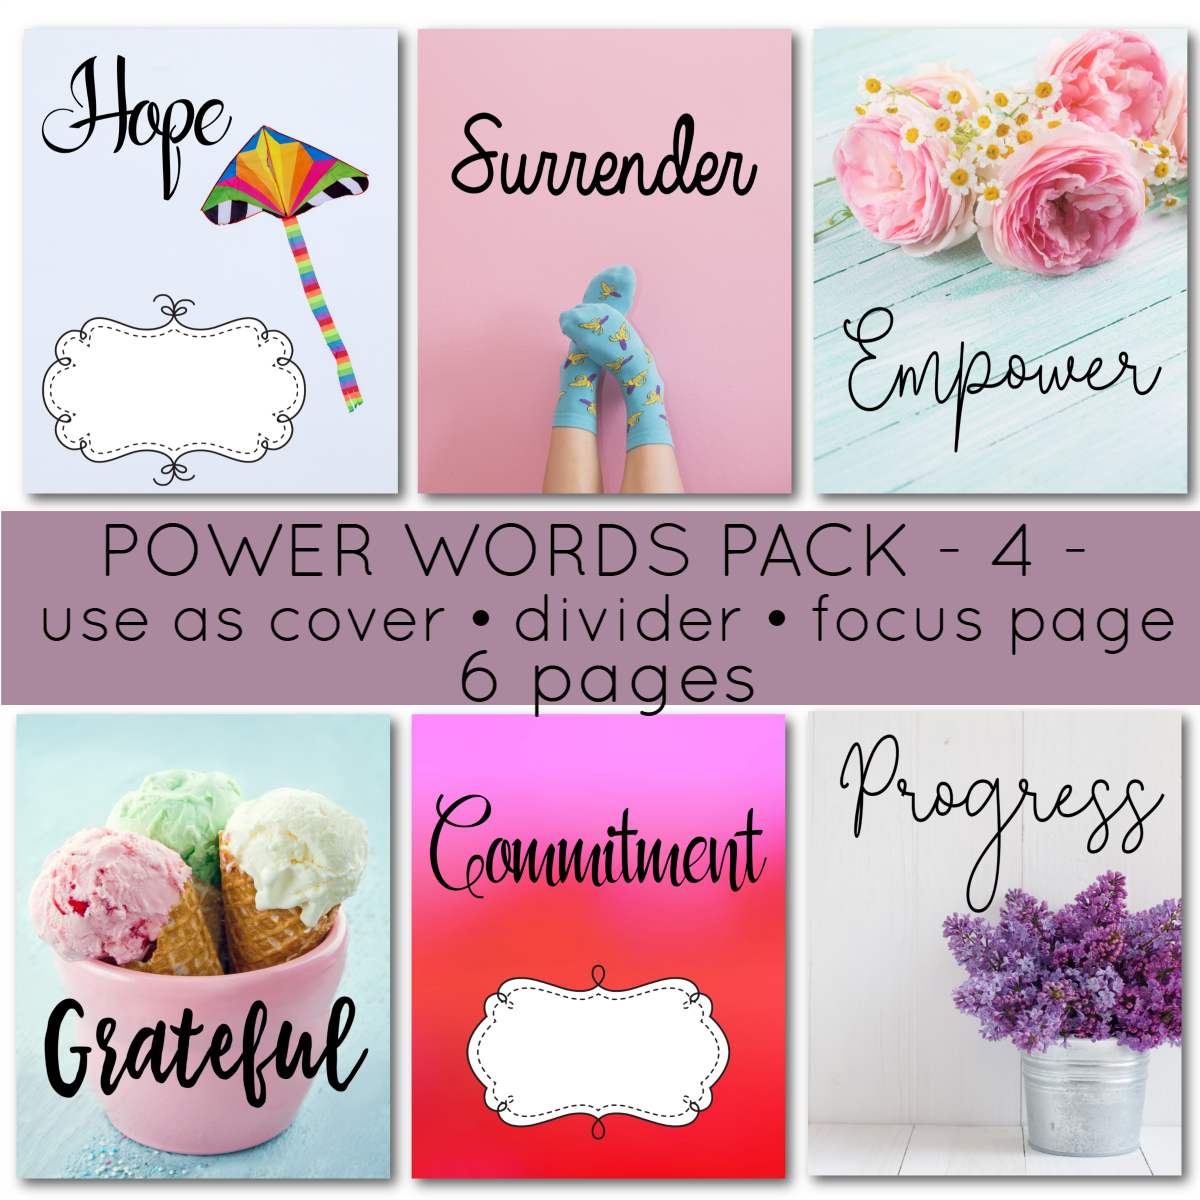 There is no denying power of words to harness your thoughts. Now, put them in your homeschool planner. You'll love these 6 pages of high quality images along with classical fonts for your 7 Step Homeschool Planner.